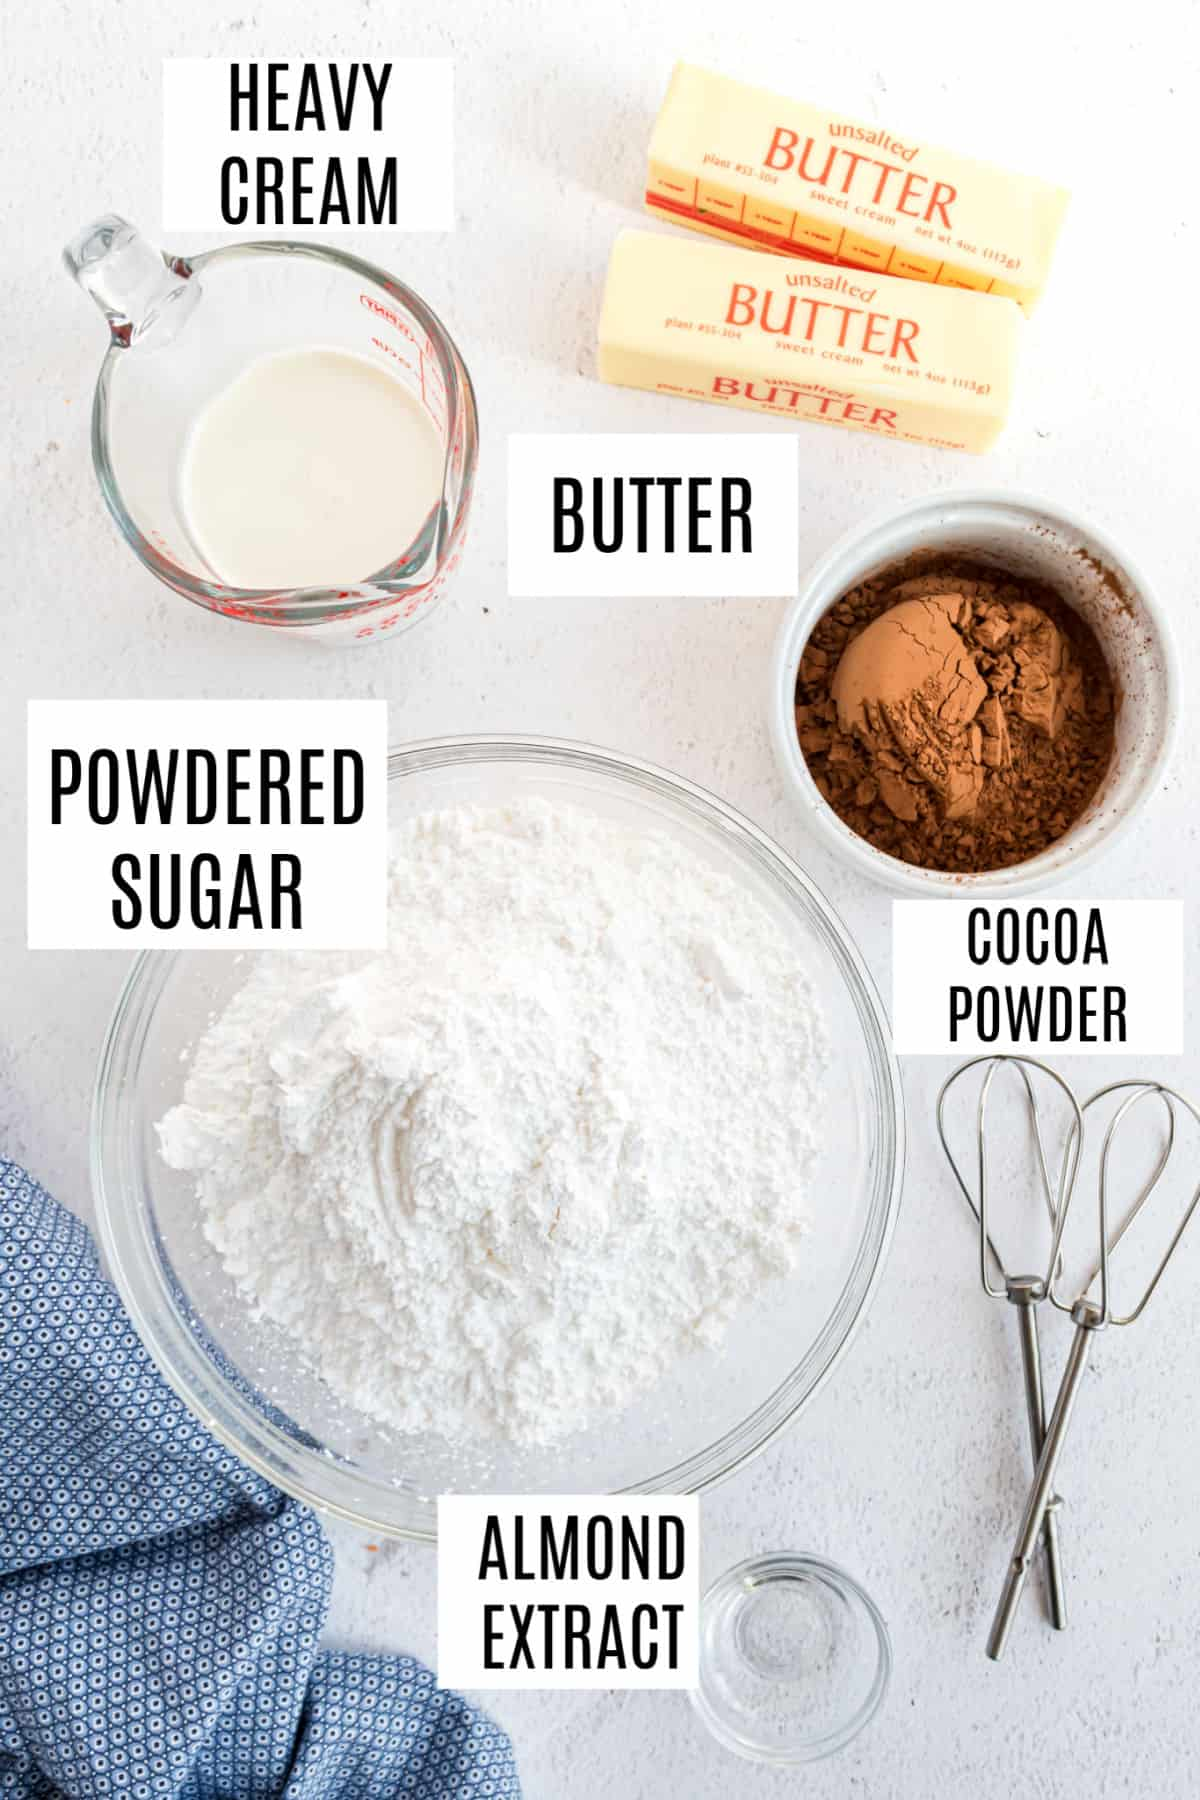 Ingredients needed to make homemade buttercream frosting with chocolate.